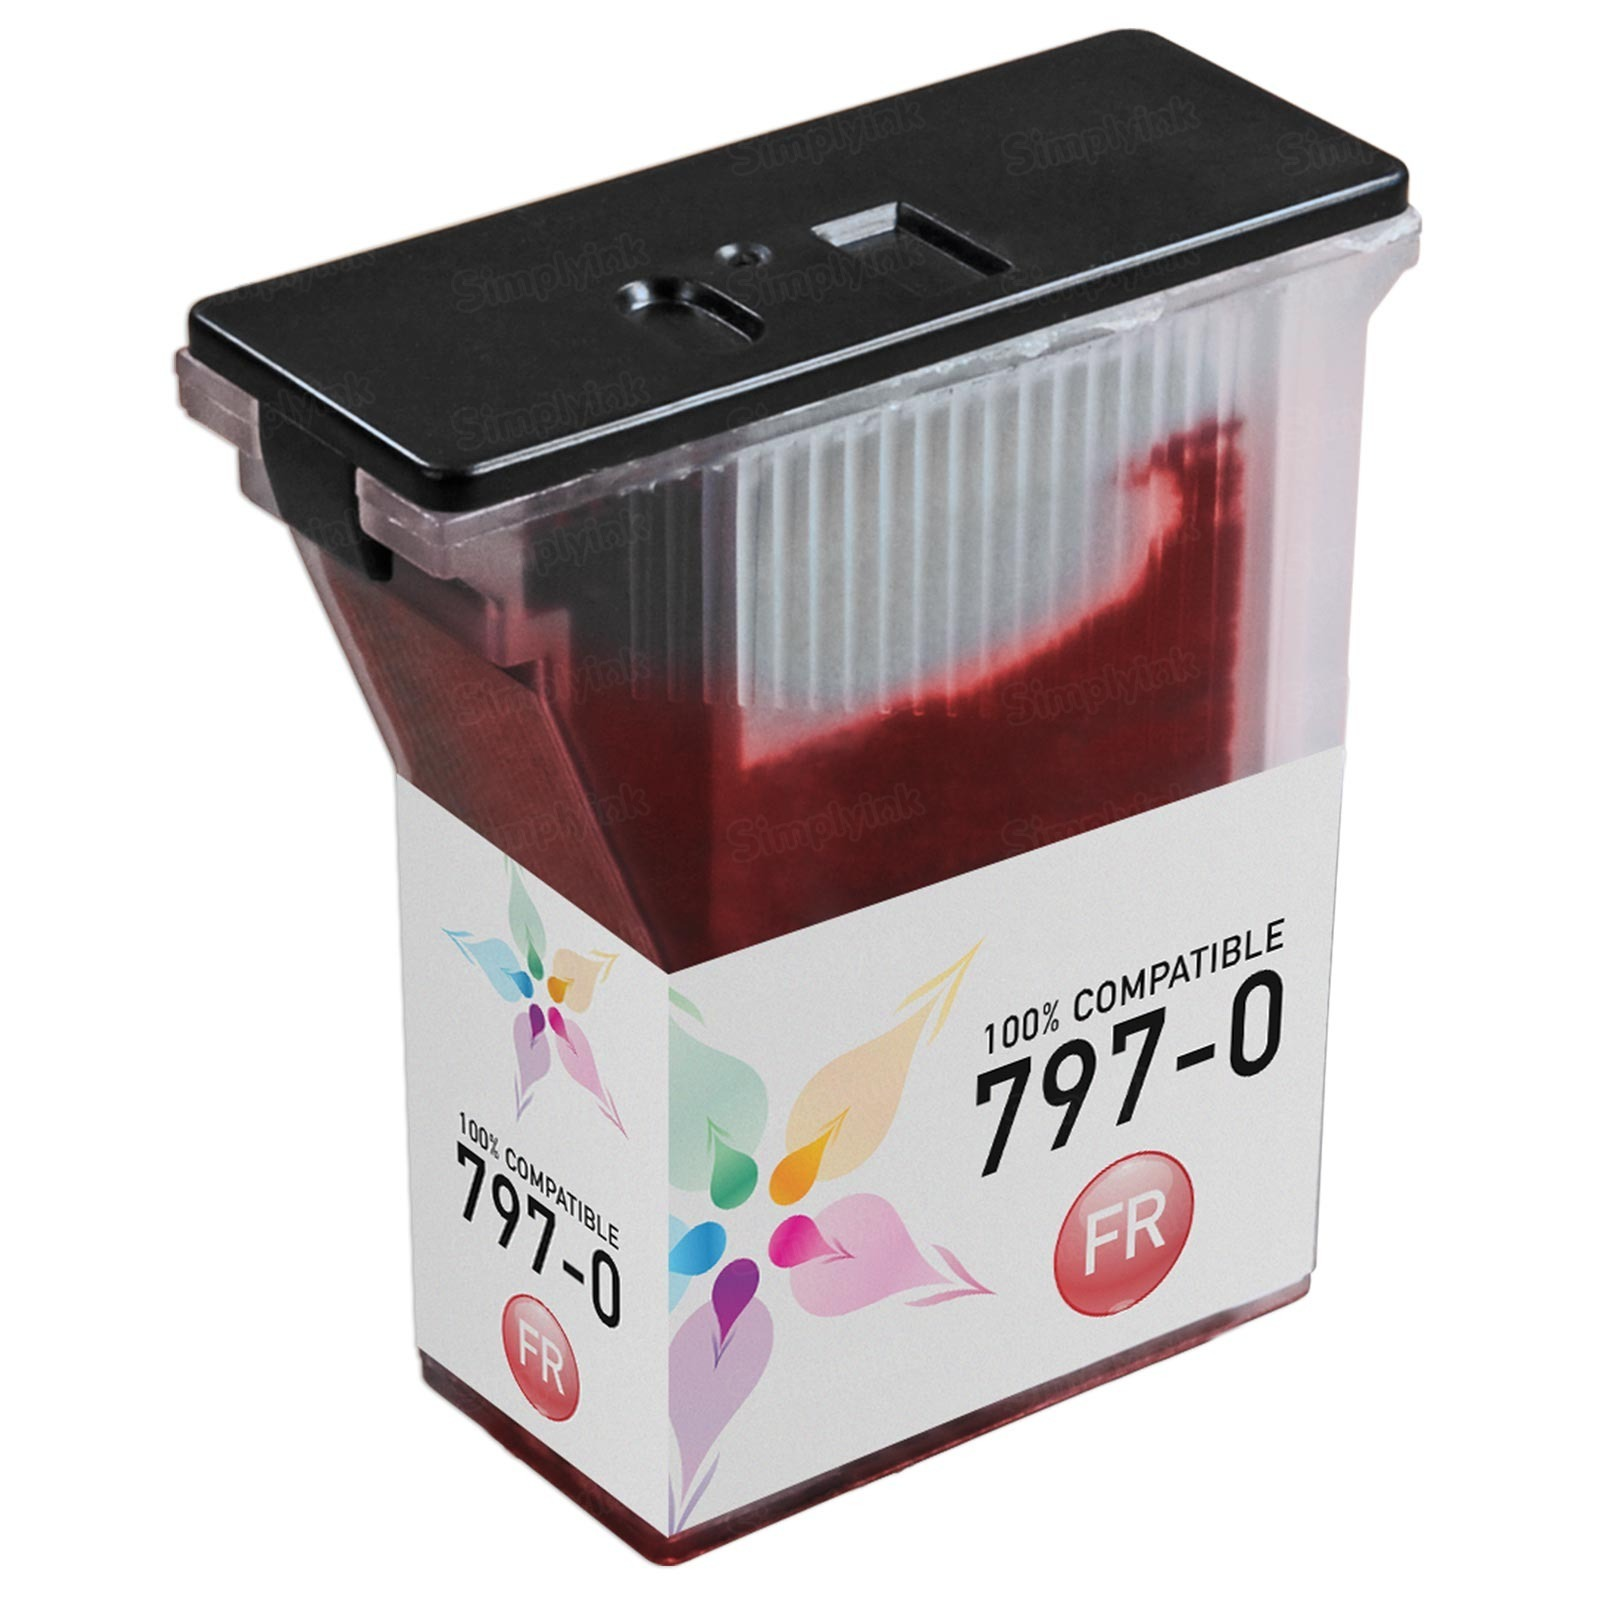 Compatible Replacement for Pitney Bowes 797-0 Fluorescent Red Ink for the MailStation K700